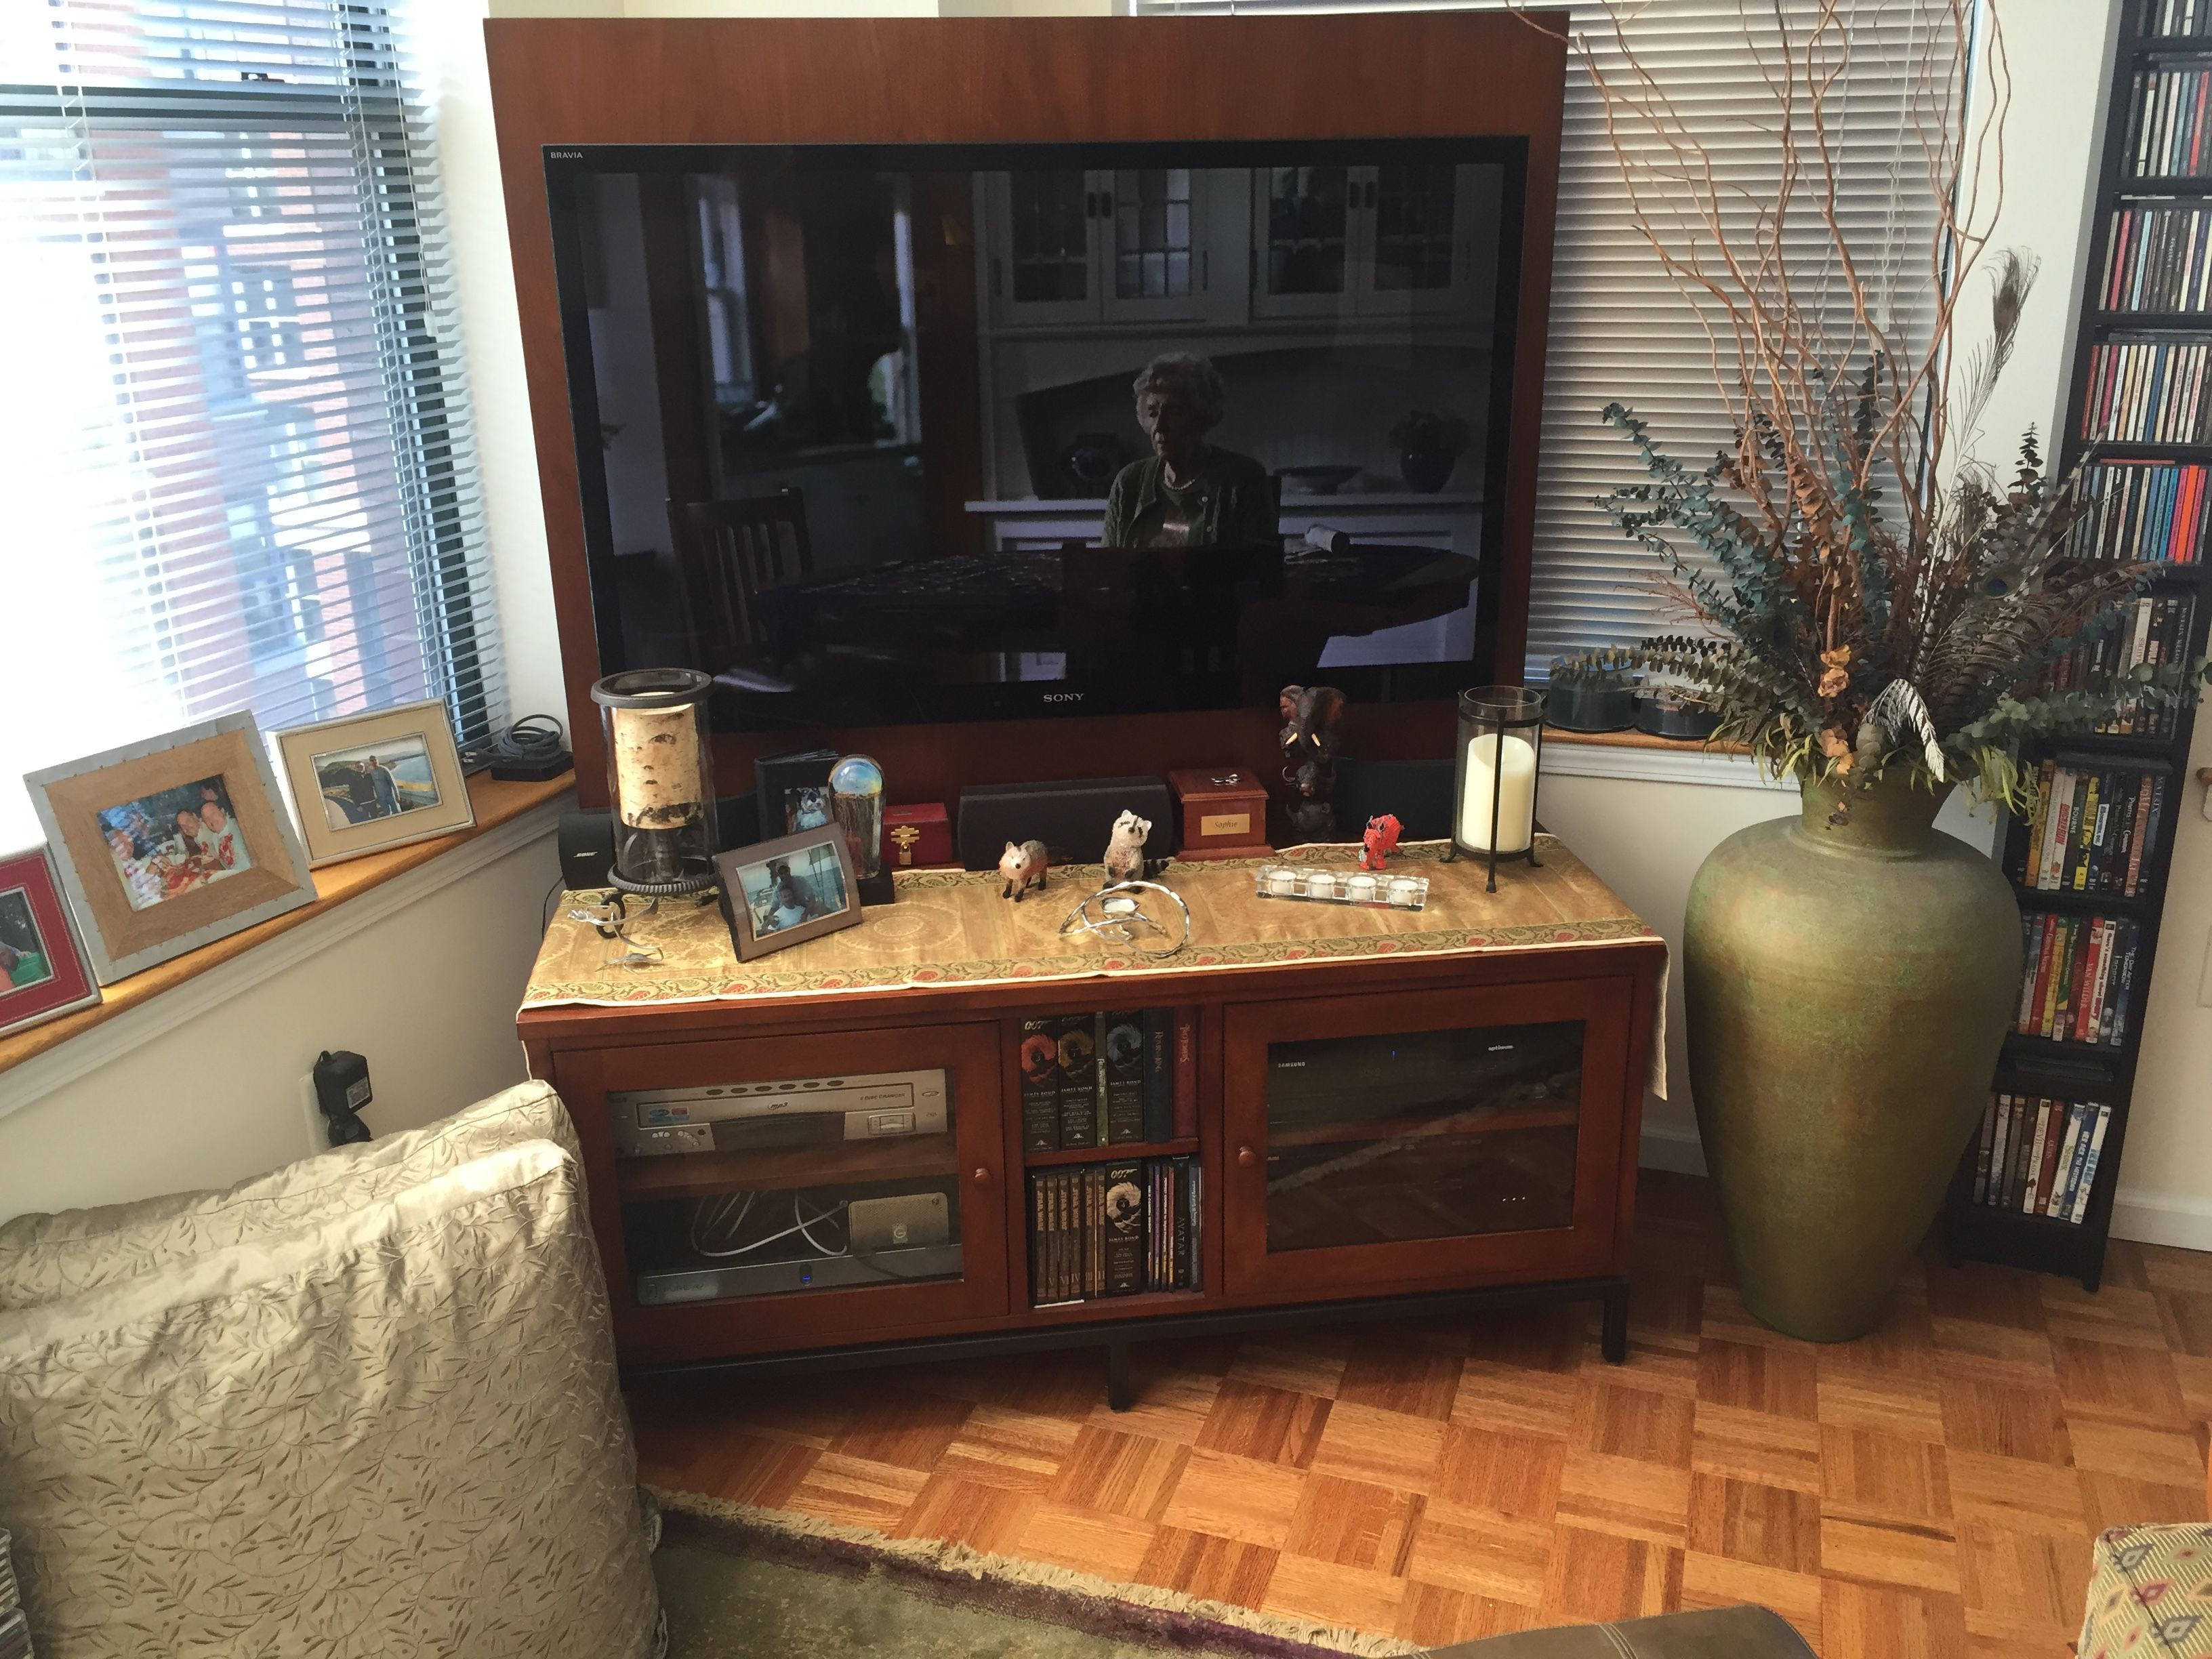 wall unit TV stand/media center. propose utilizing in